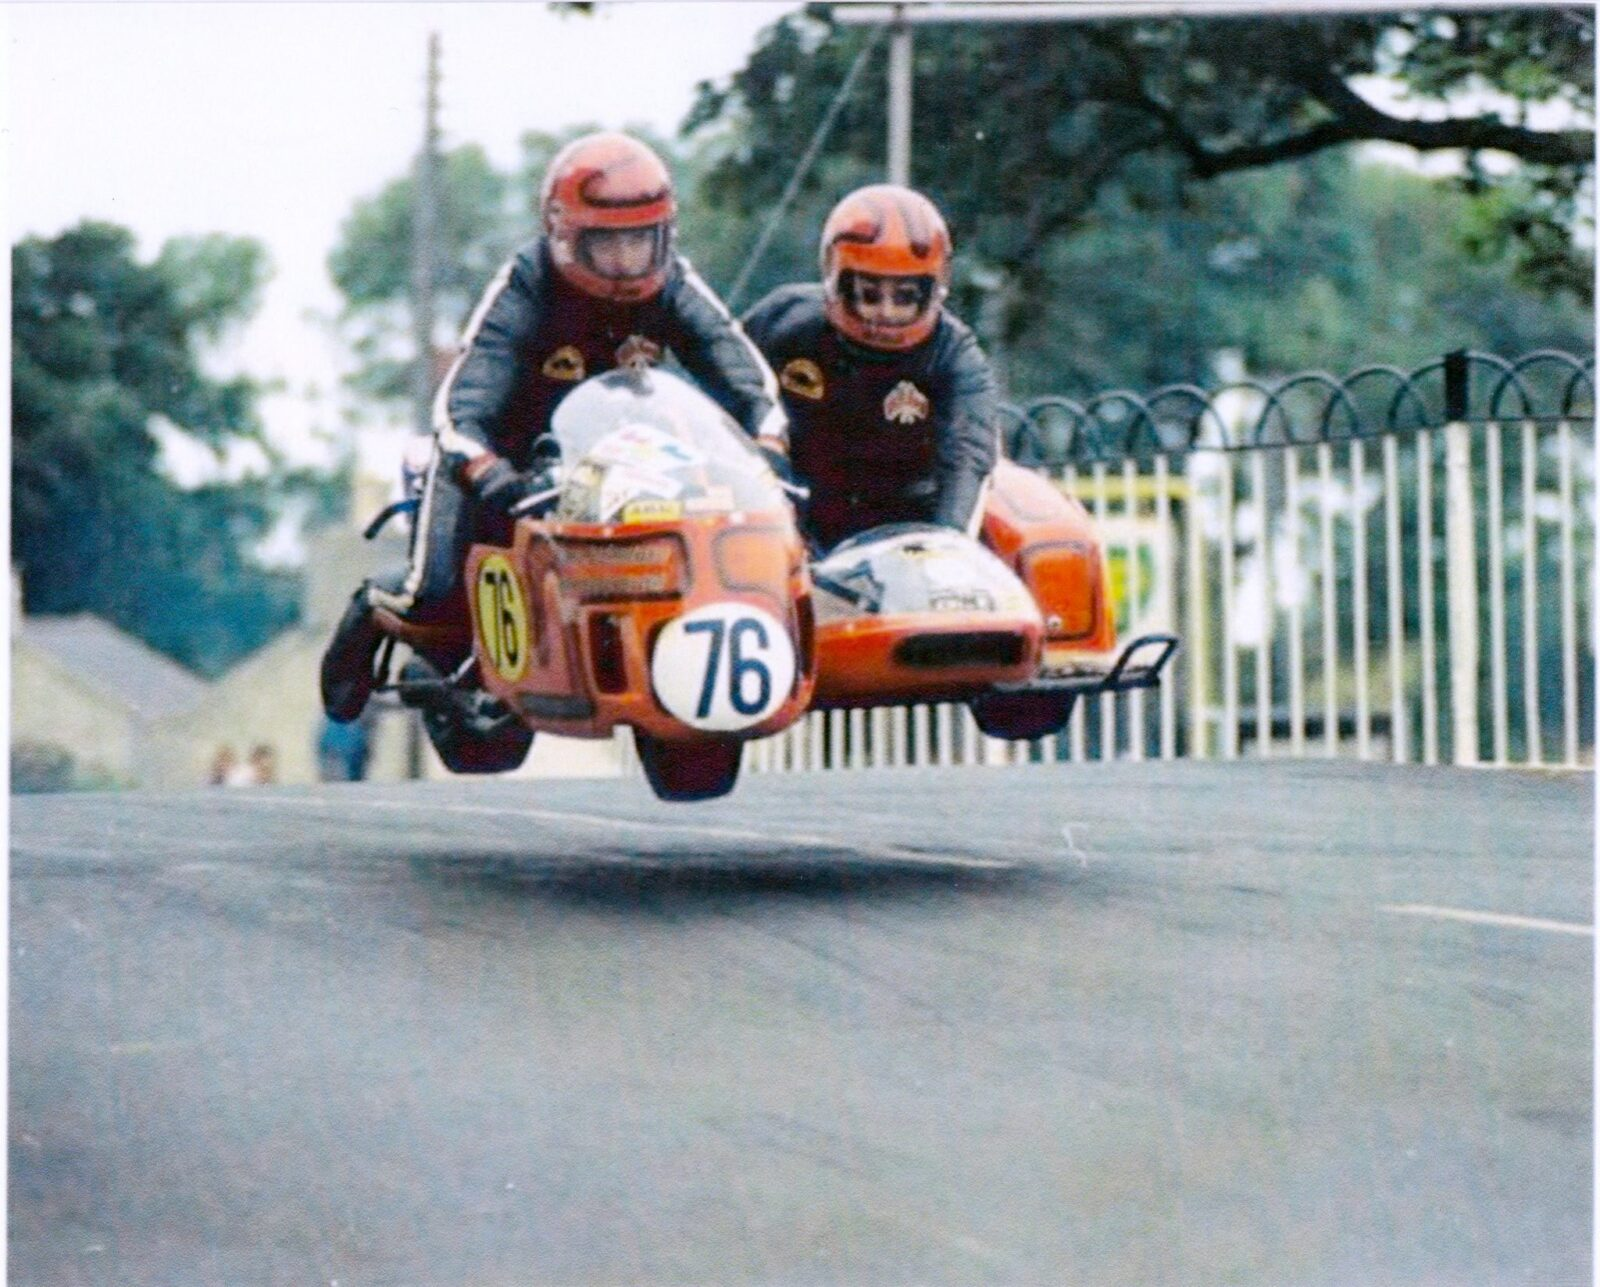 IOM TT 33 1600x1287 - Joe and Alma - The First American Couple To Race The Isle Of Man TT